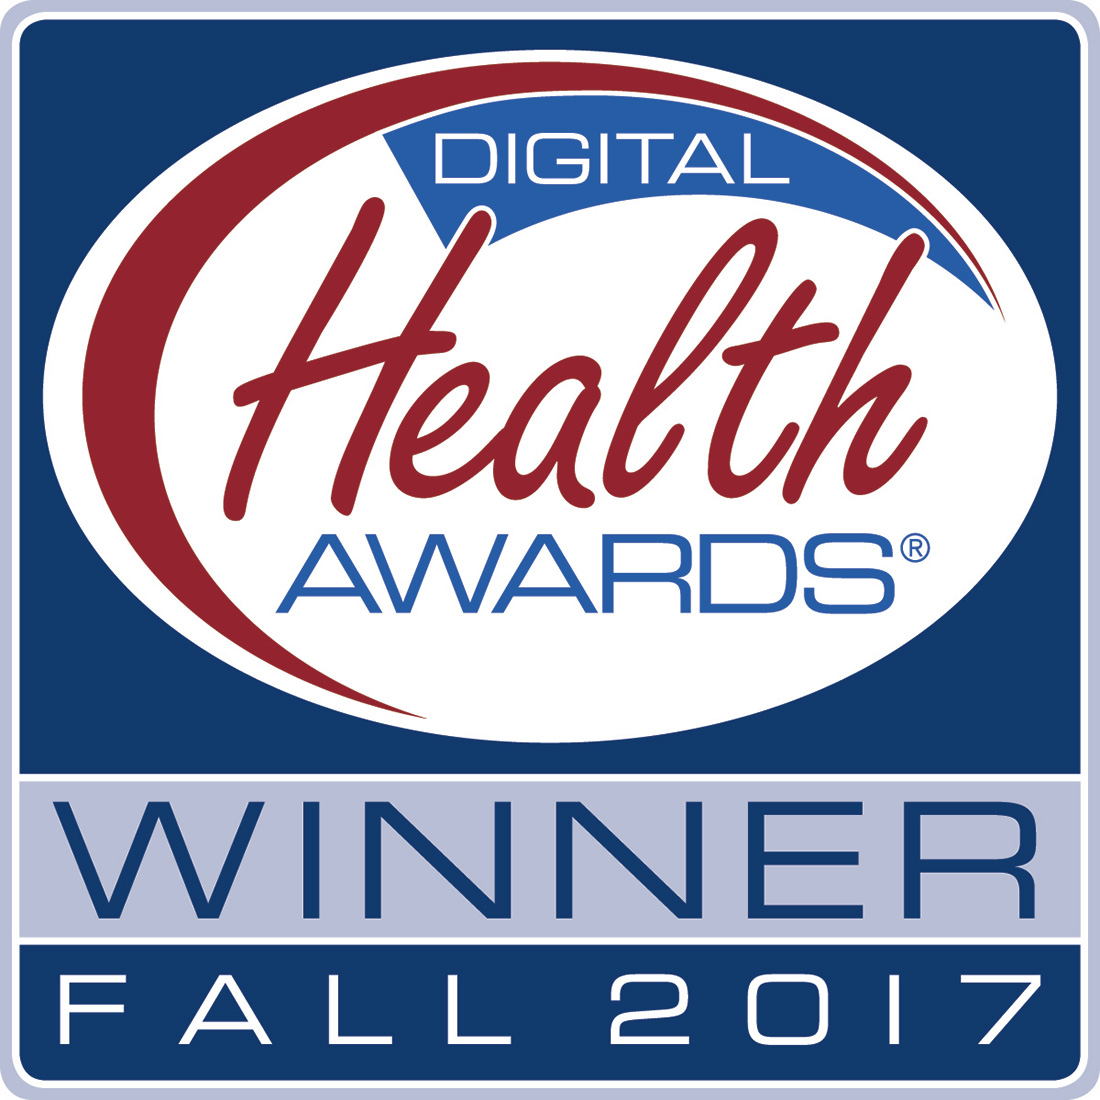 Digital Health Awards Fall 2017 Winner